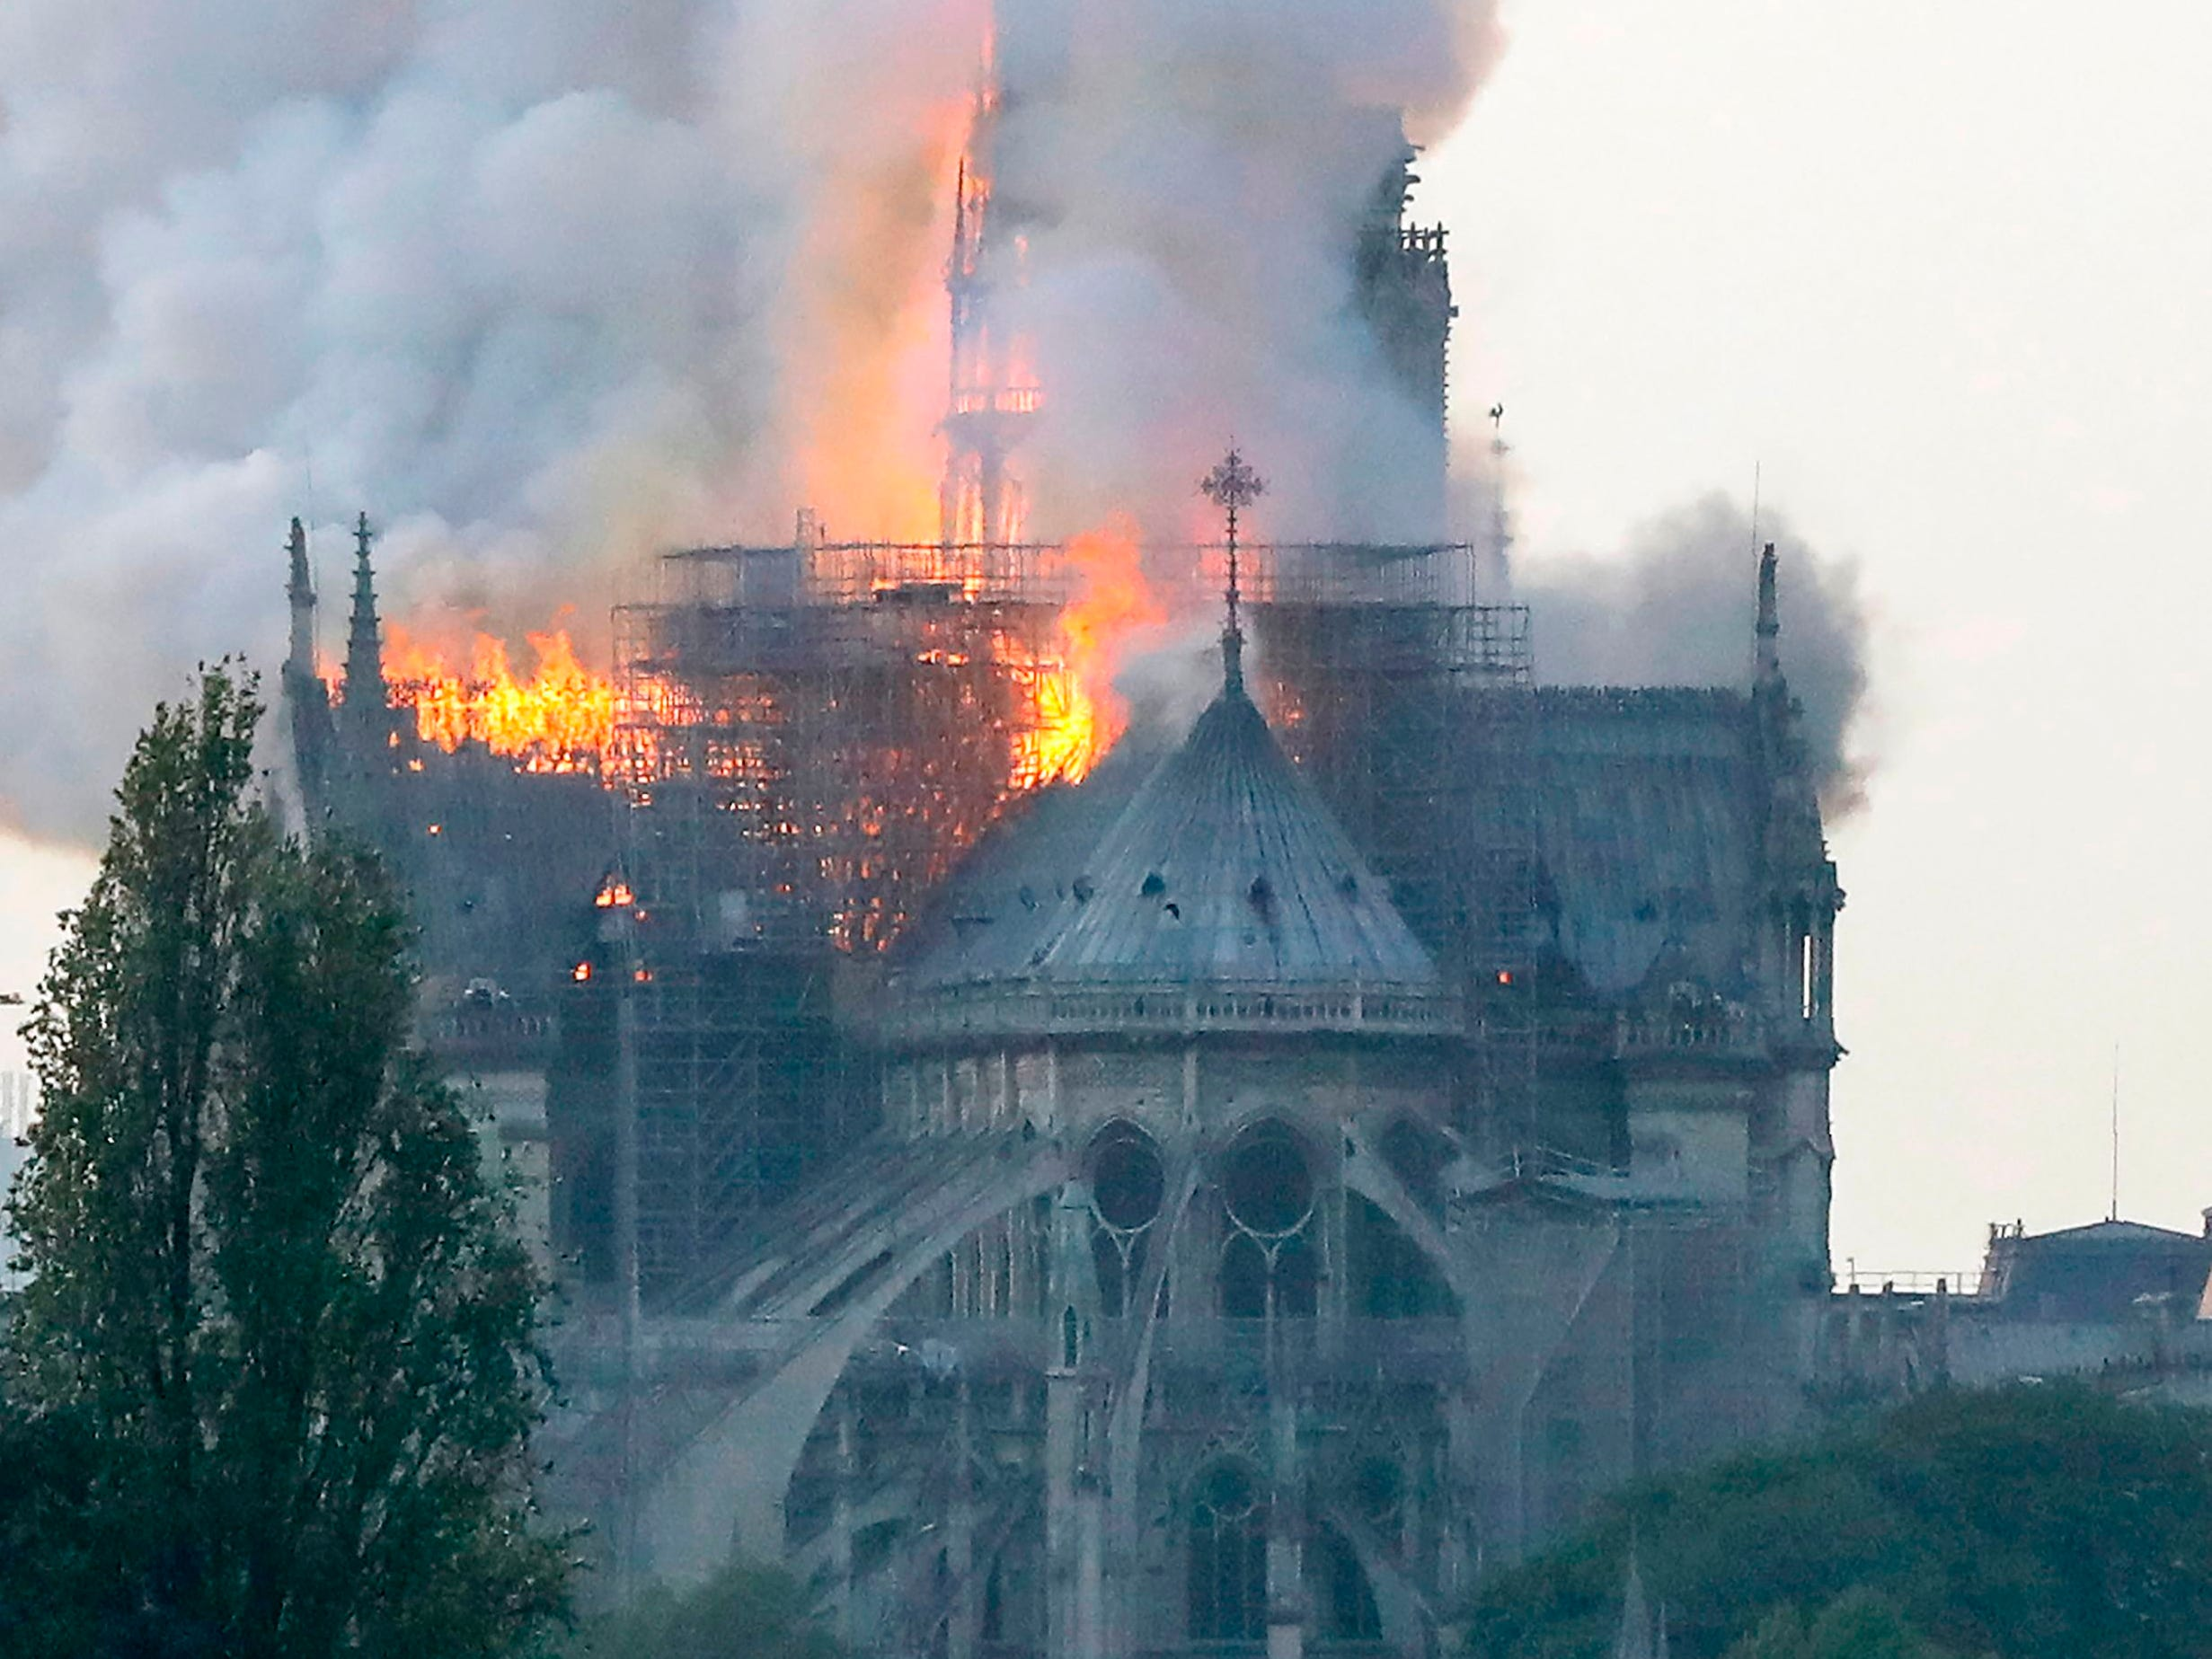 Smoke ascends as flames rise during a fire at the landmark Notre Dame Cathedral.